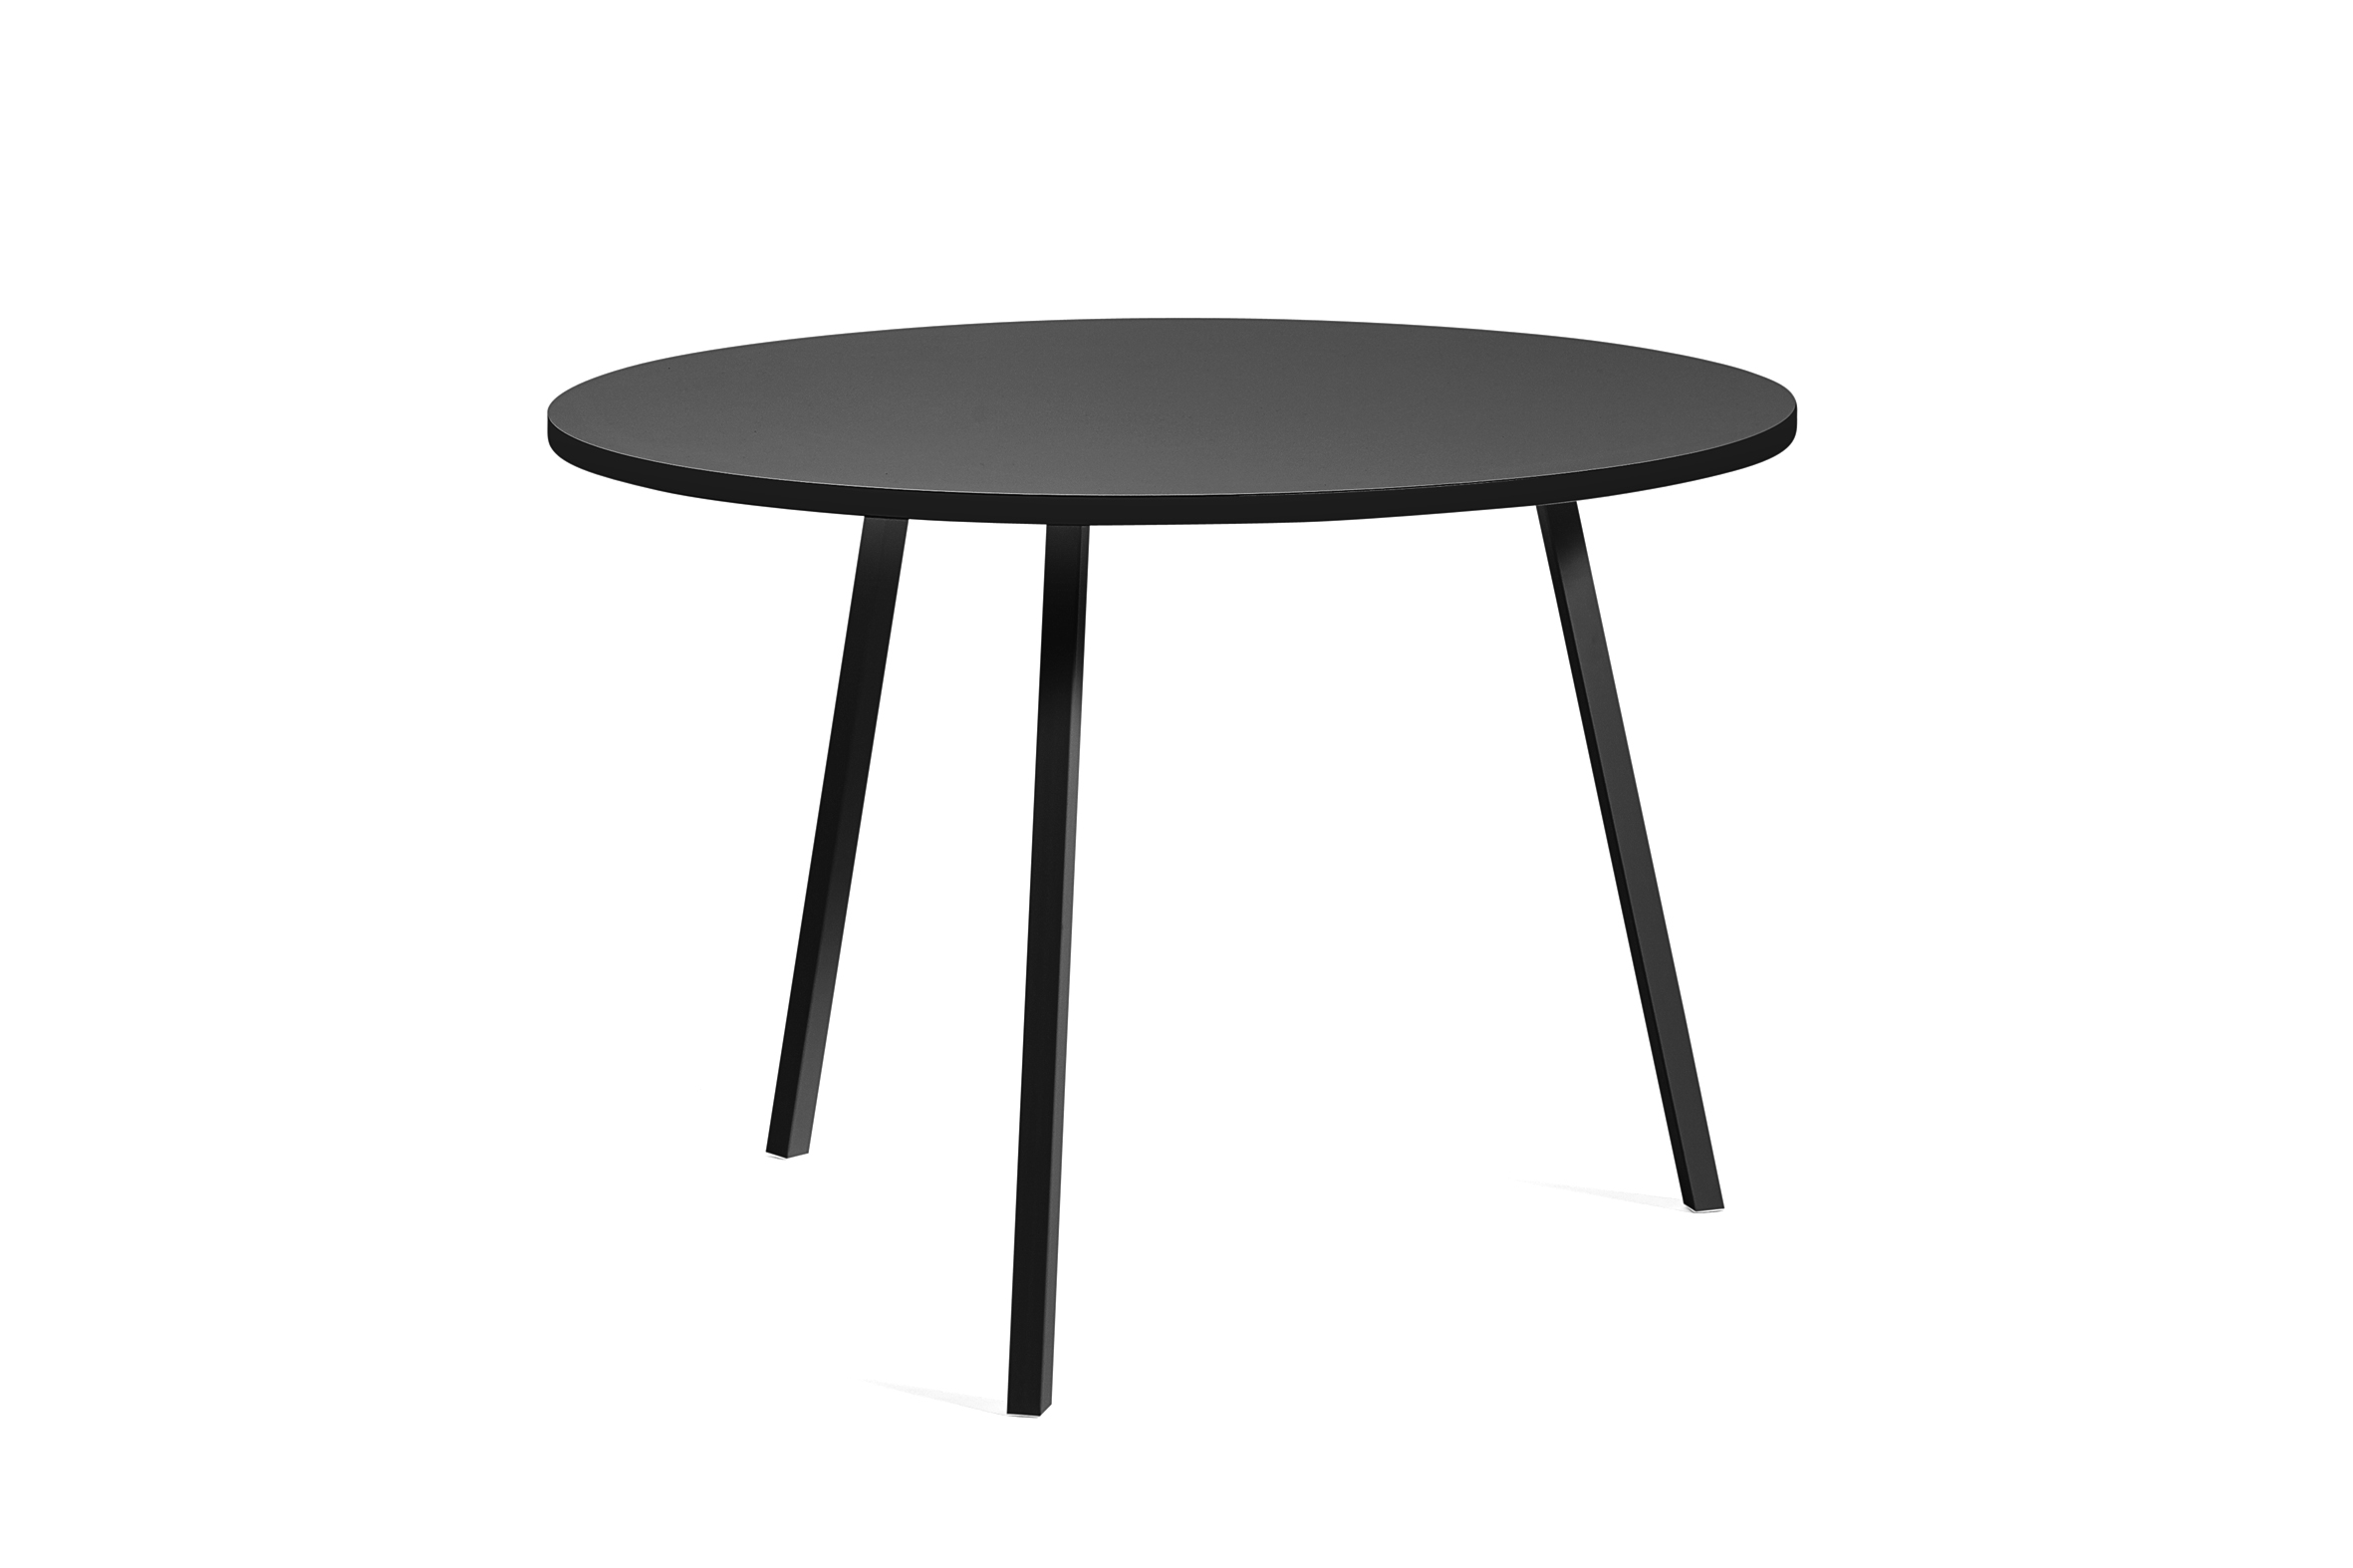 Loop stand round table black 105 cm